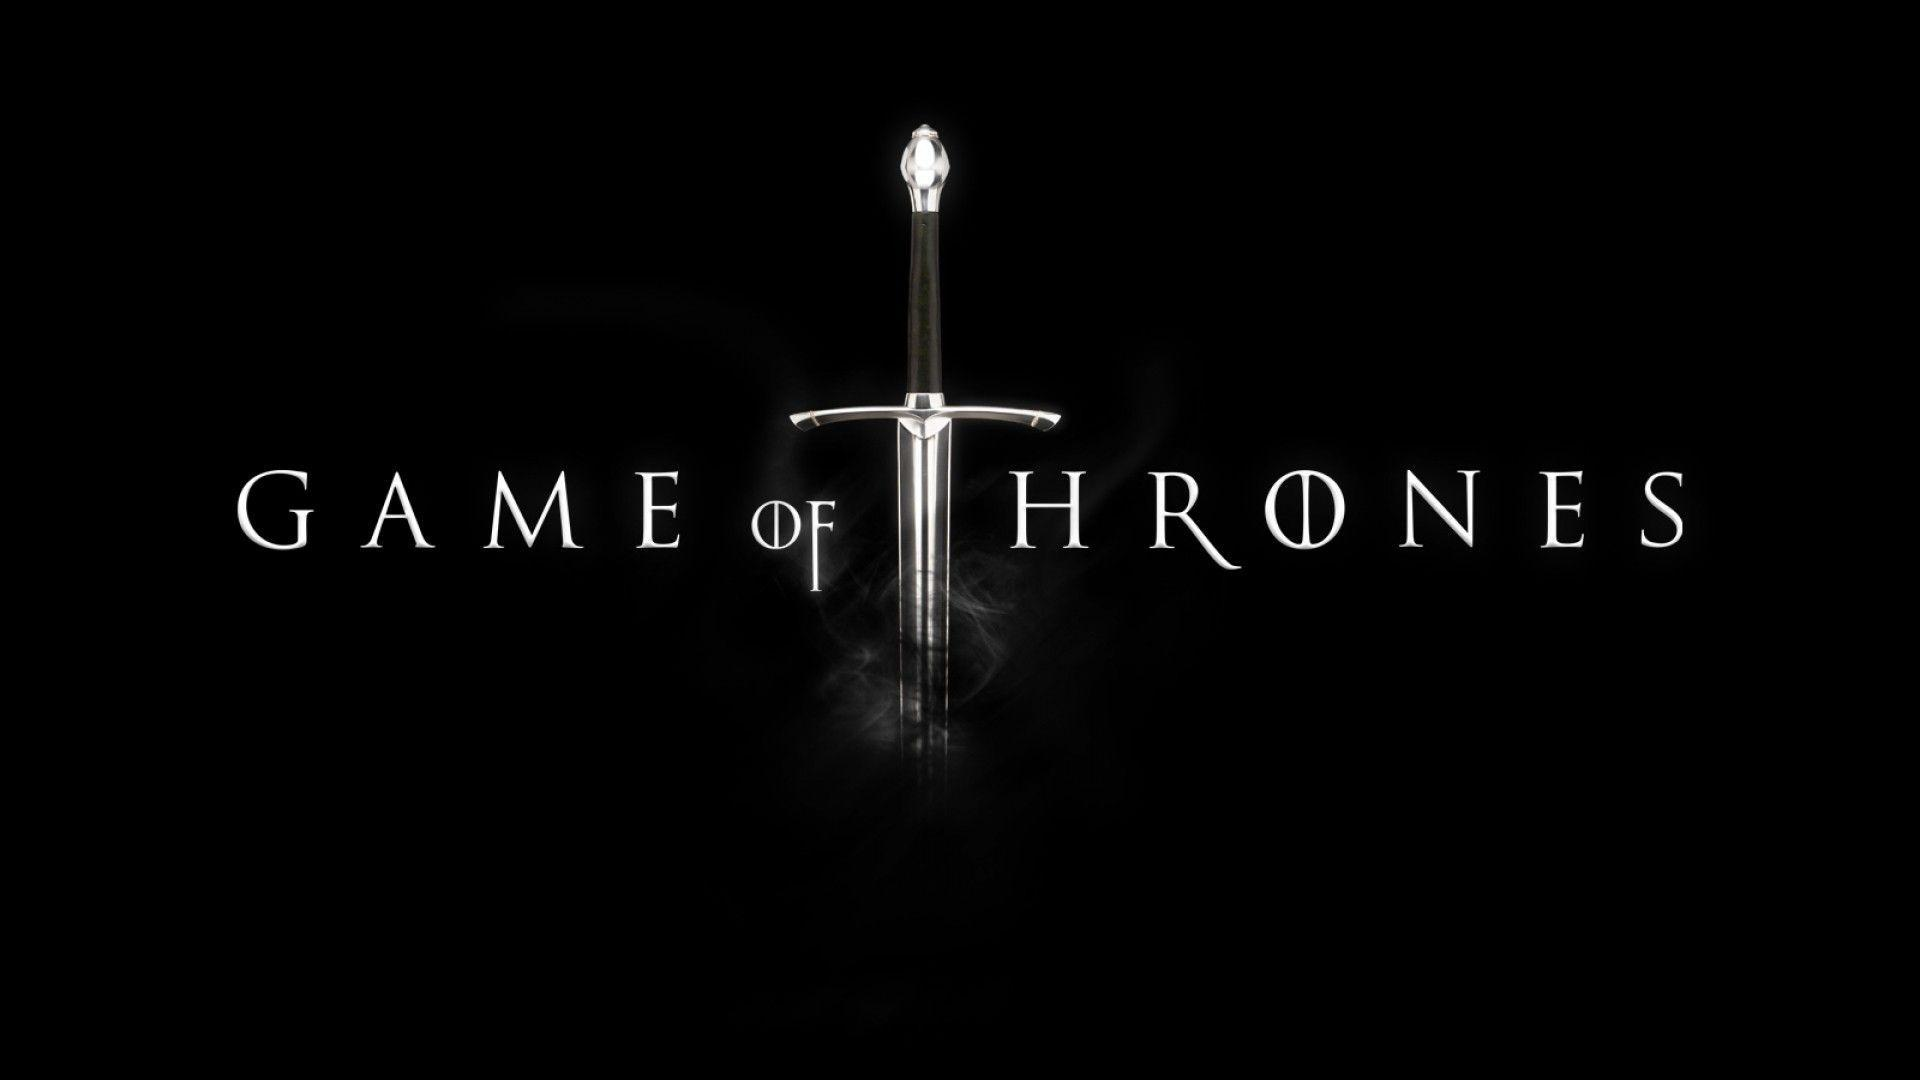 hd game of thrones wallpaper, wallpapers games of thrones